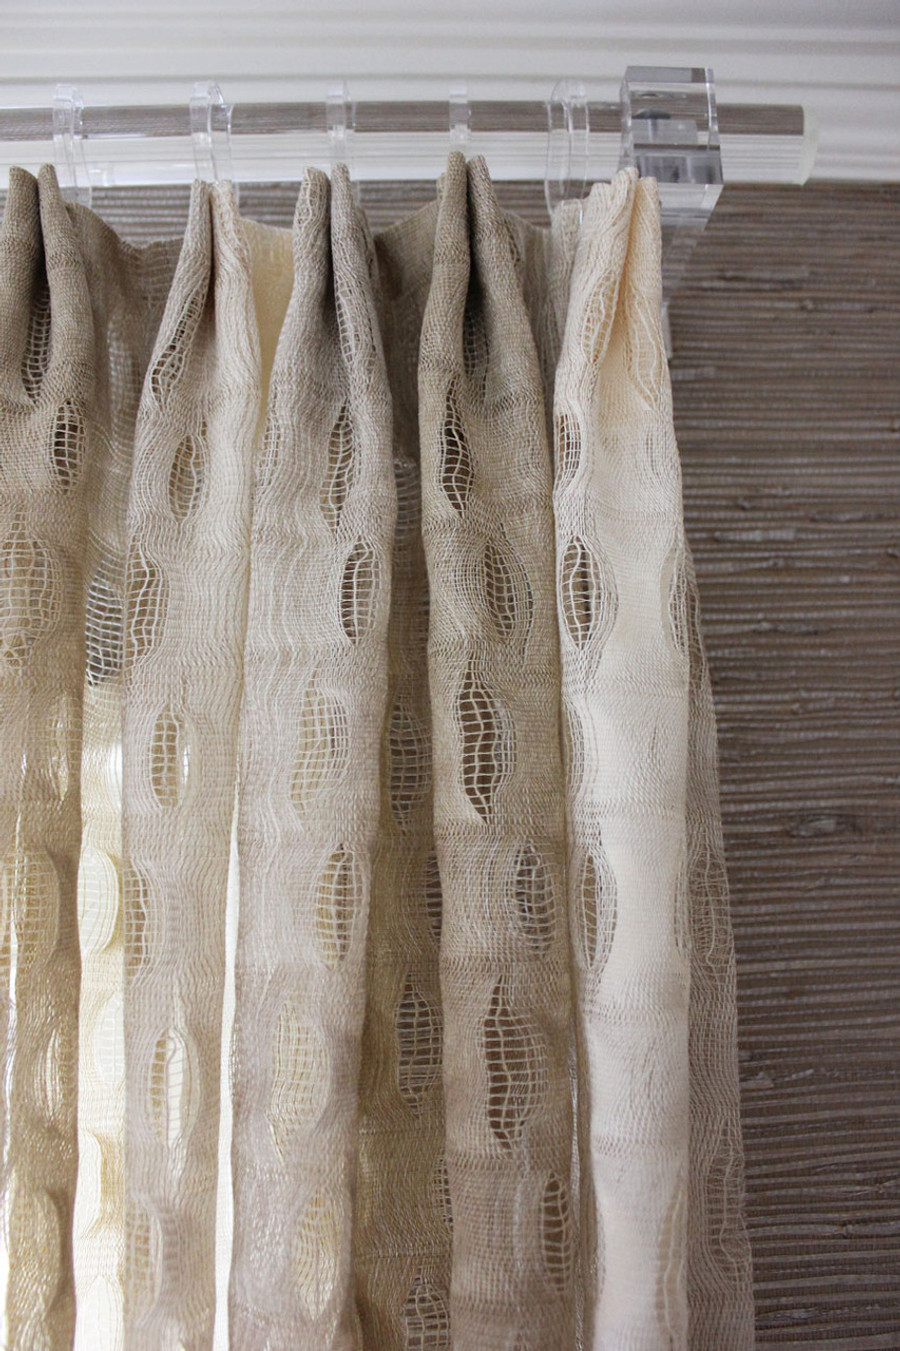 Acrylic curtain rod - Custom Drapes By Lynn Chalk In Isis Ombre In Creme Clear Acrylic Drapery Hardware Is